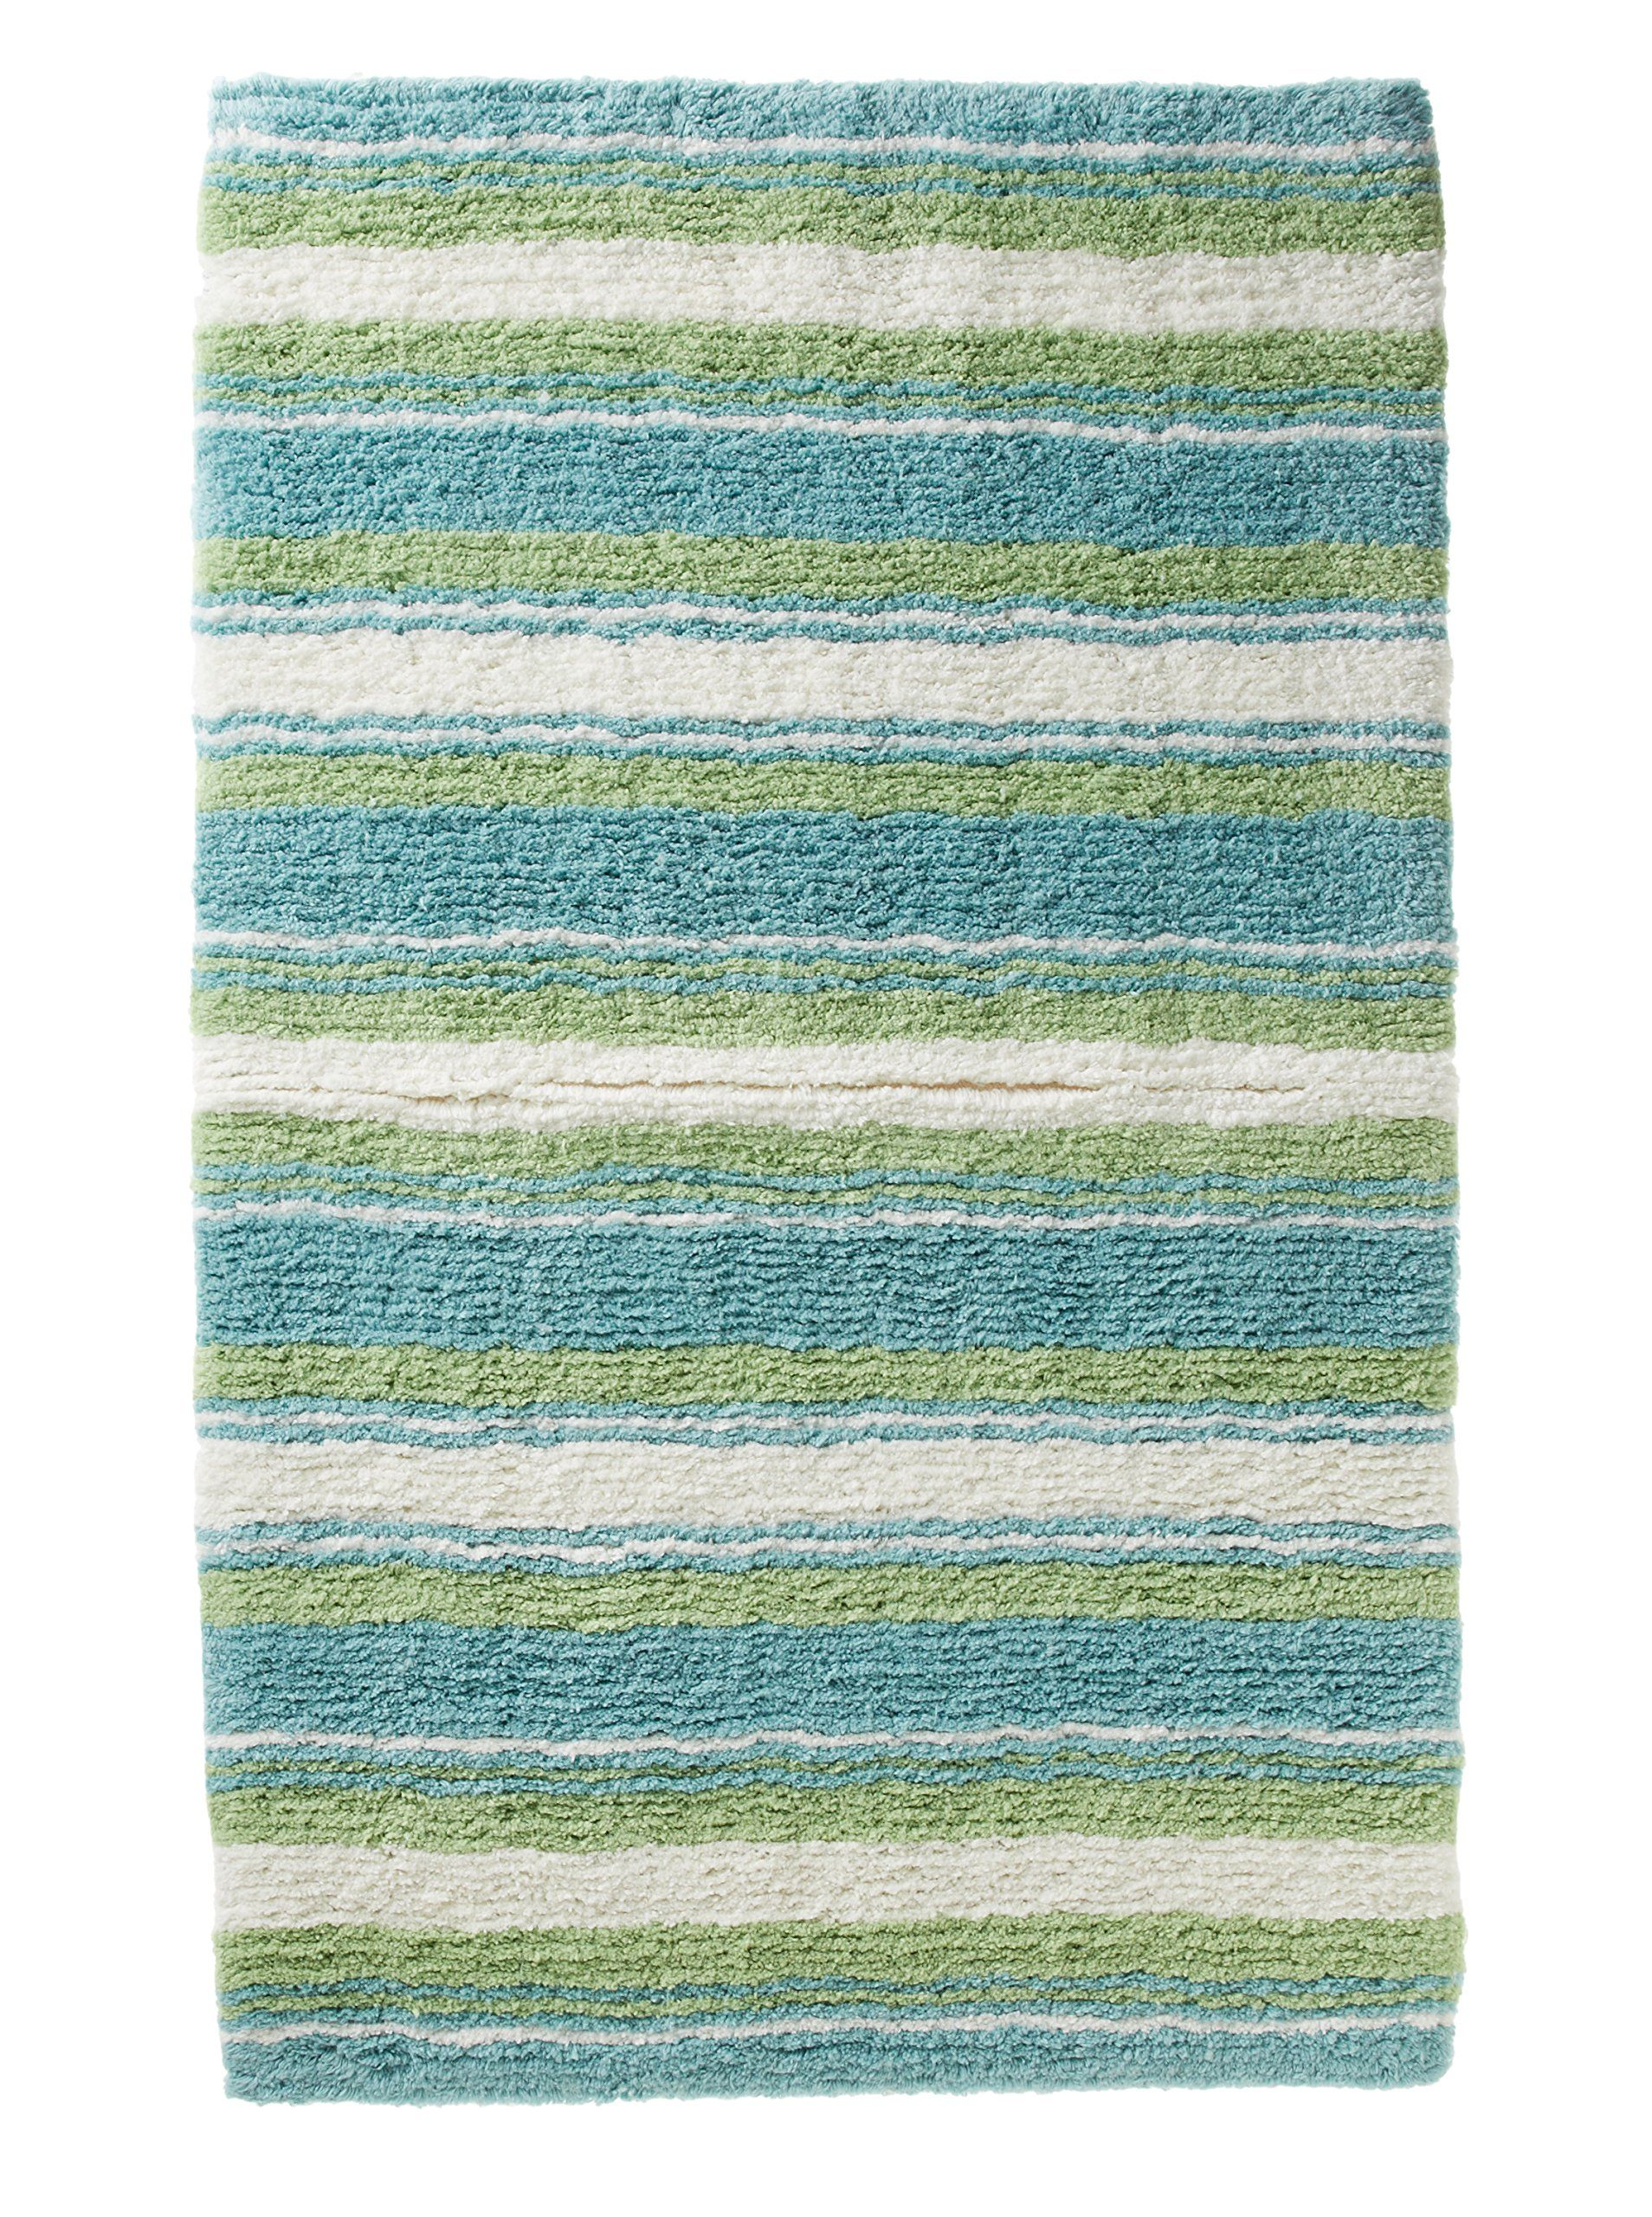 Ordinaire Ocean Bath Rug (Tommy Bahama Ocean Stripe) $24.99 + 5.70 Est. Shipping From  Amazon